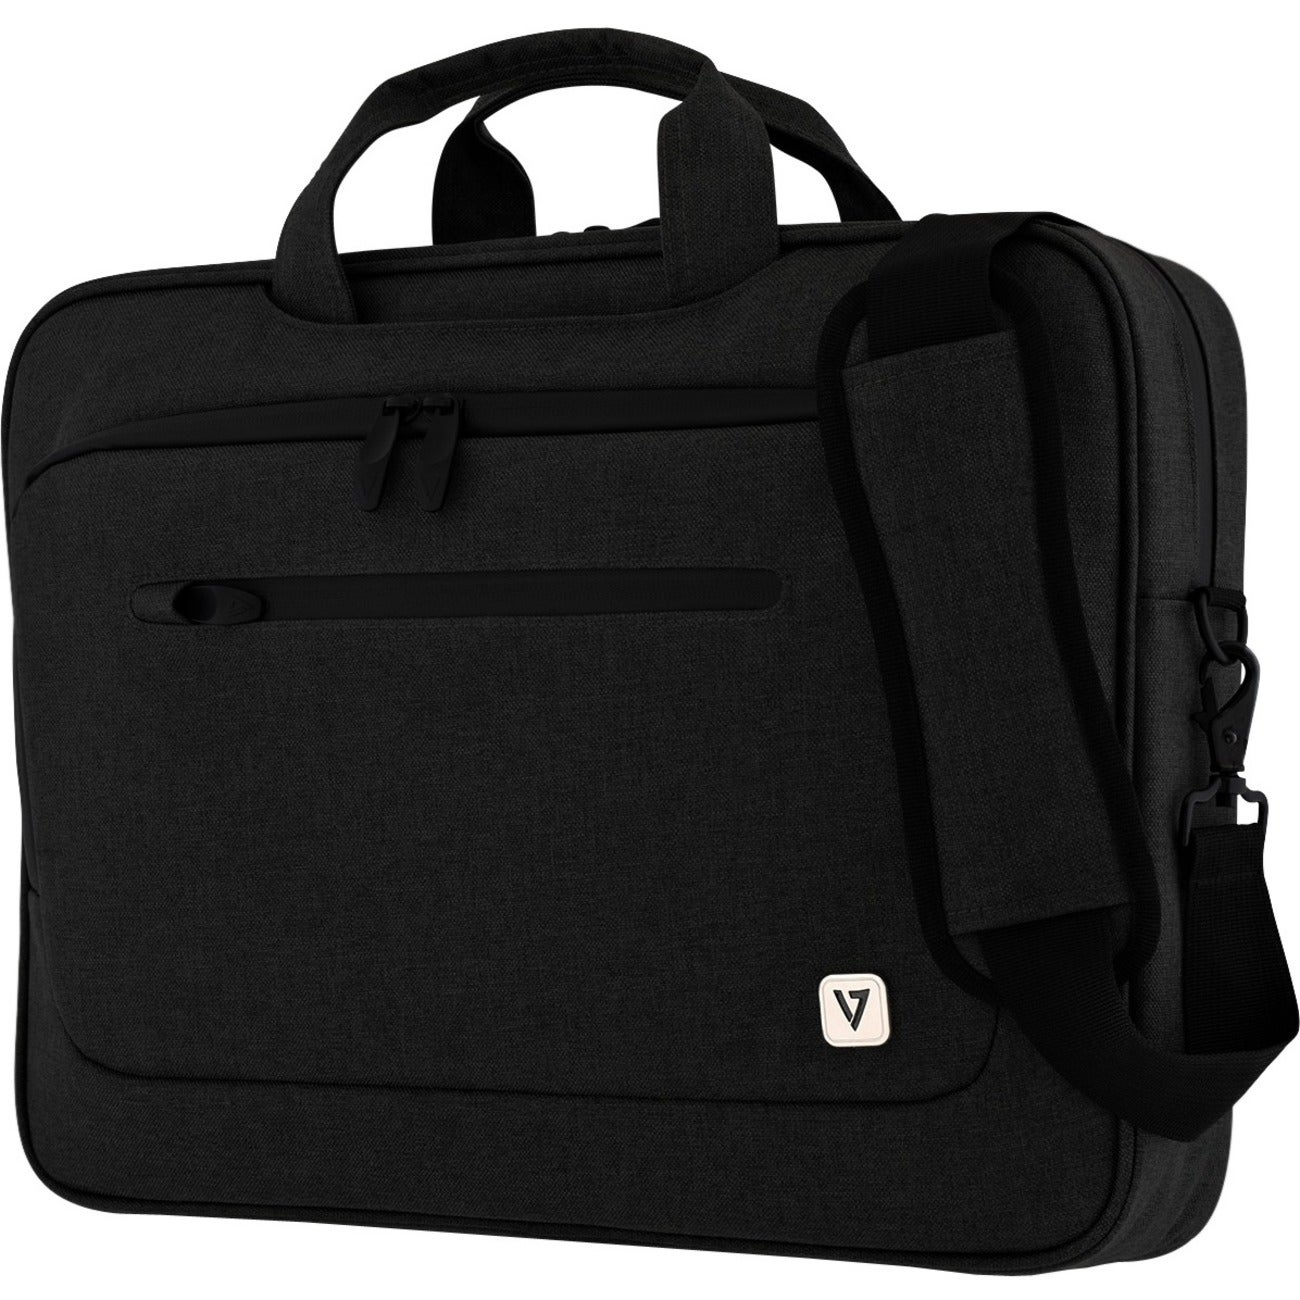 "V7 Technology CTPX1-BLK-1N Carrying Case for 15.6"" Notebo..."